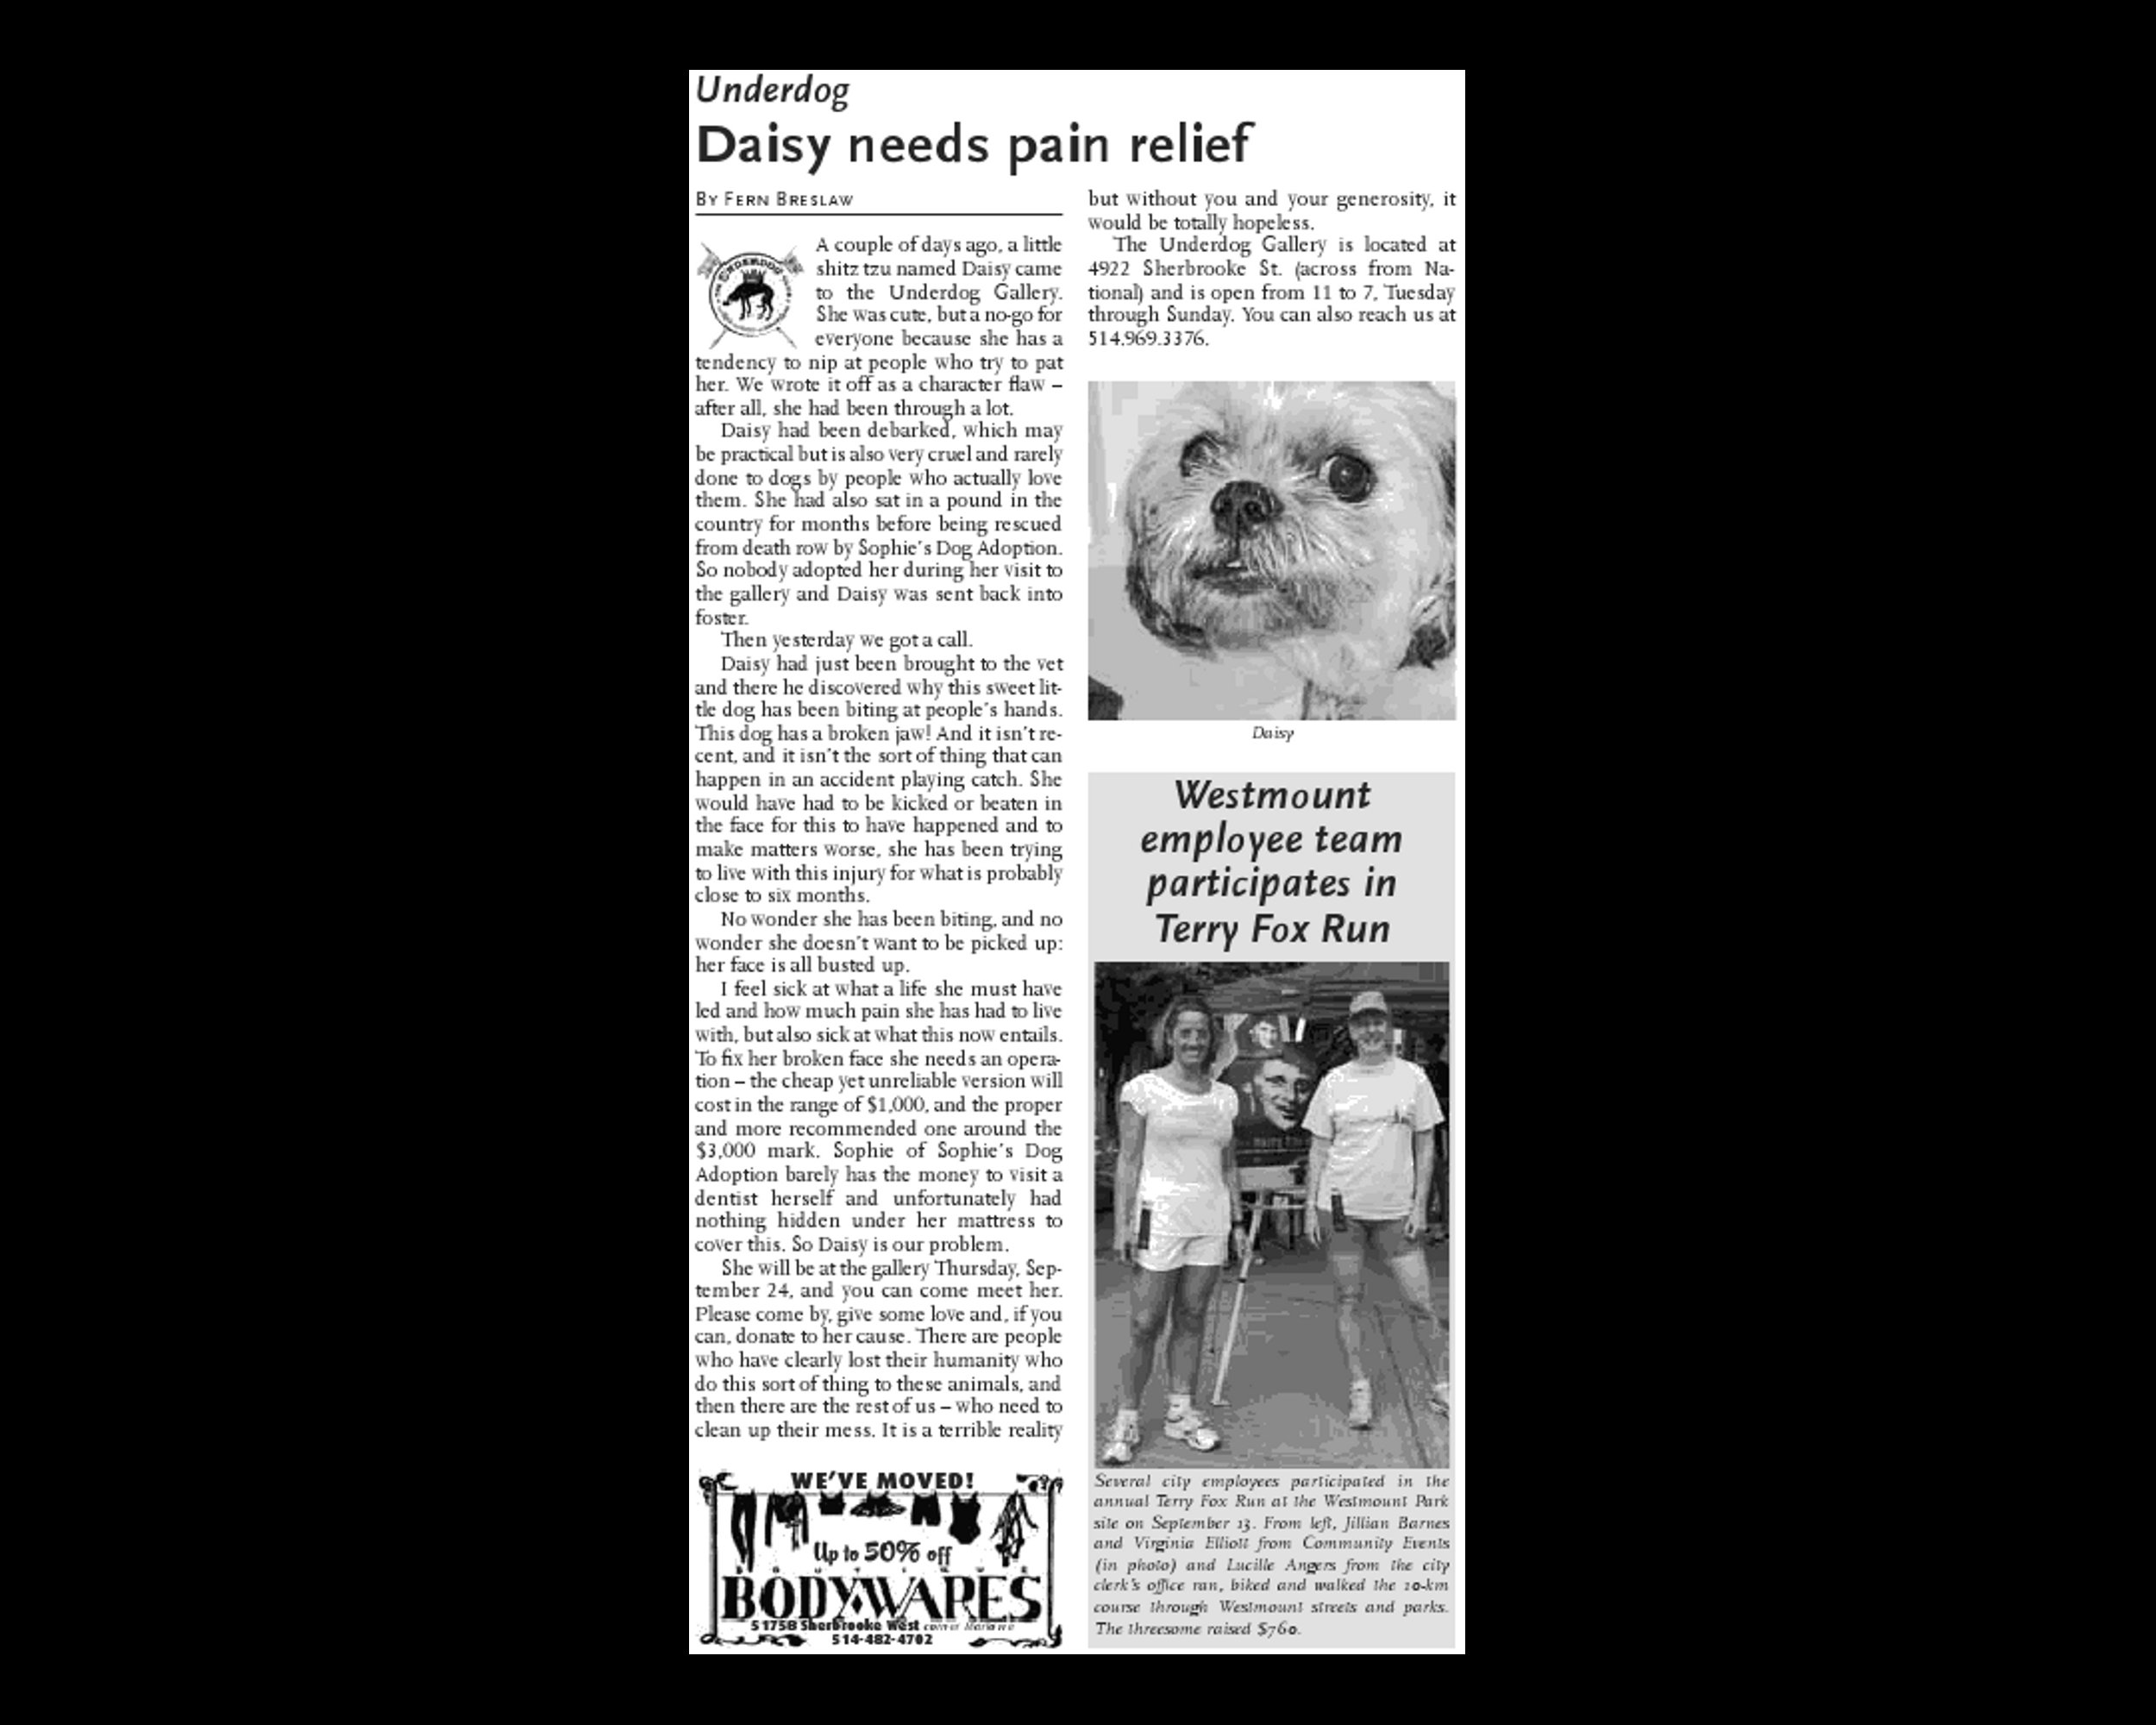 Daisy needs pain relief